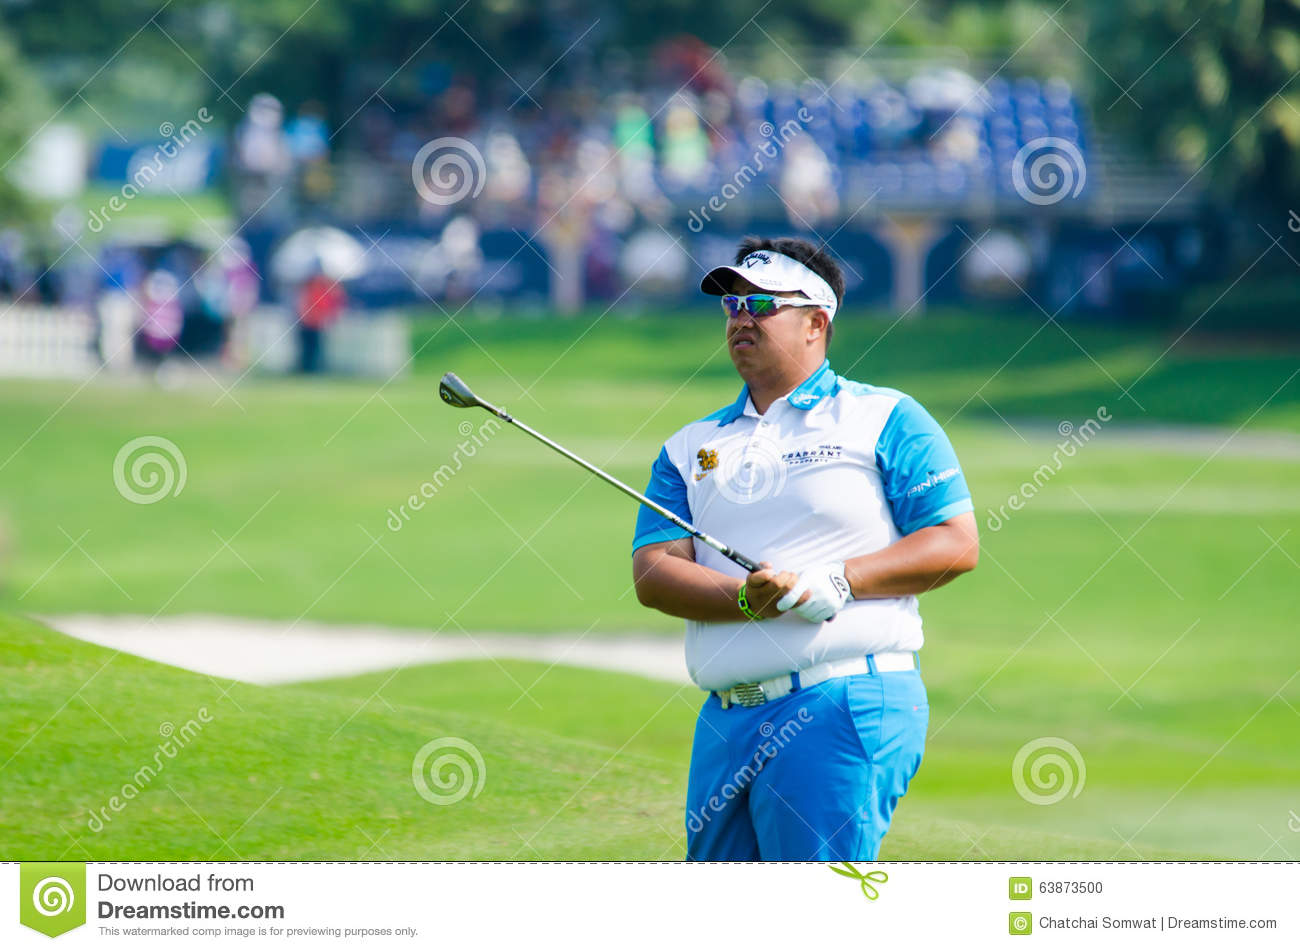 Thailand golf championship betting preview bwin sports betting